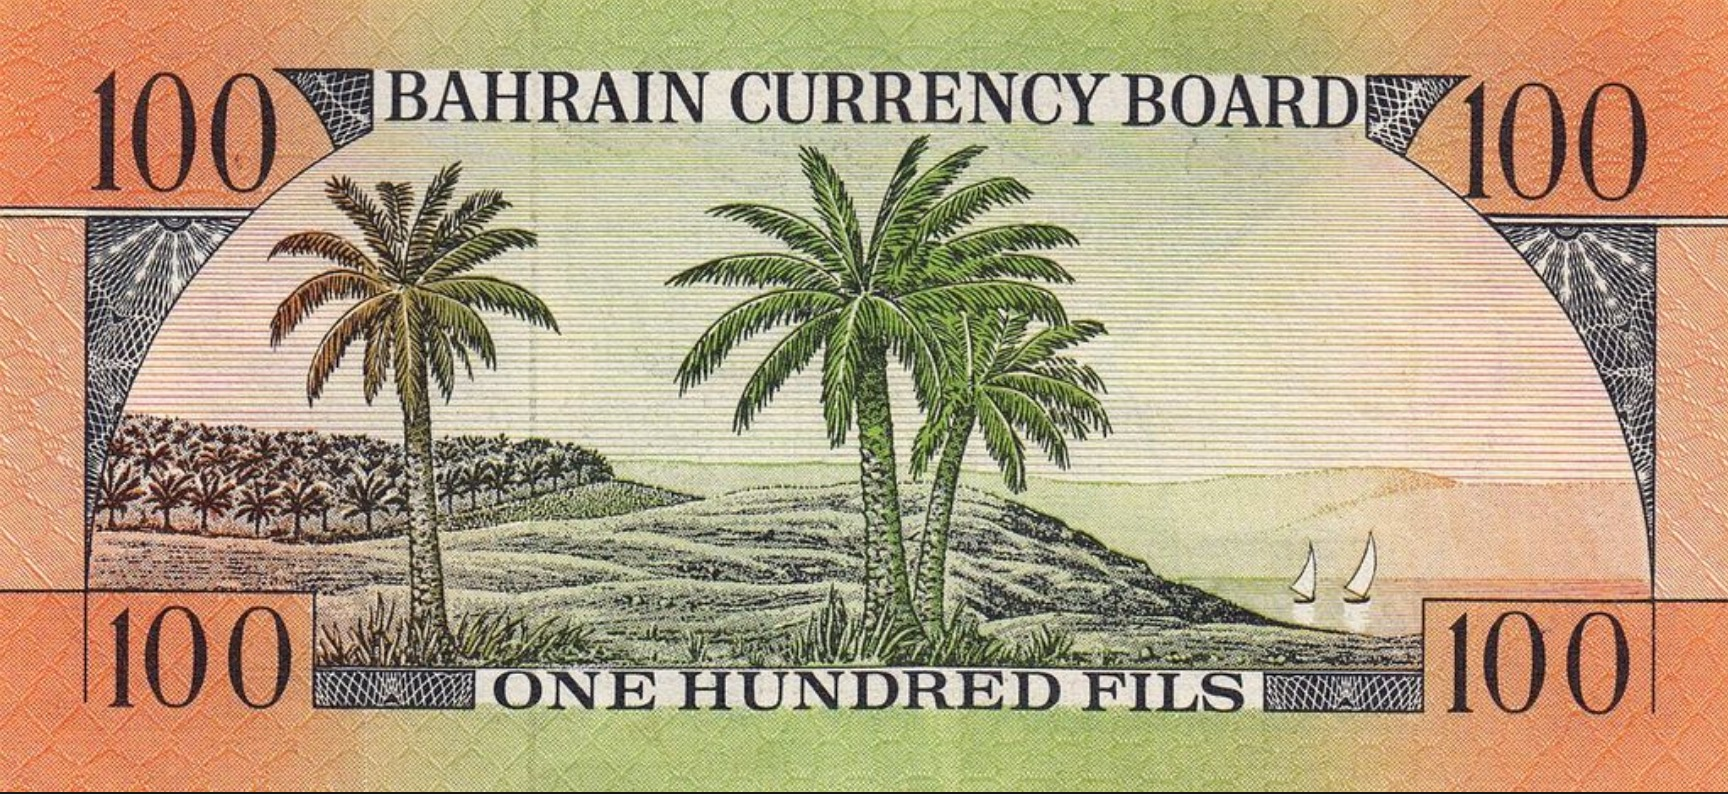 Bahrain Currency Board 100 Fils banknote (First Issue)